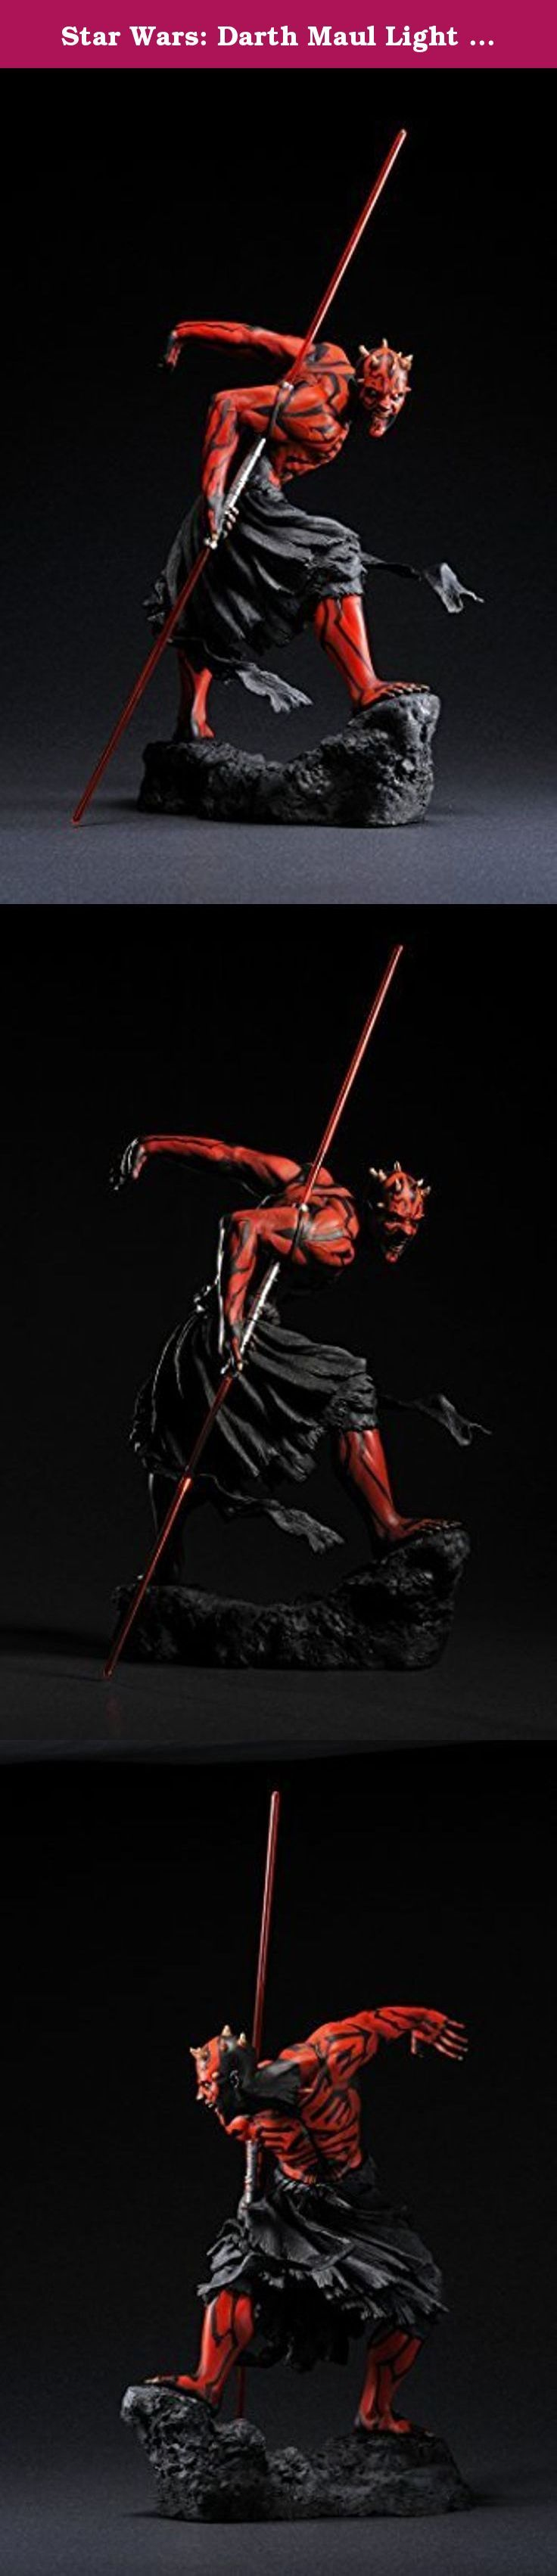 Star Wars: Darth Maul Light Up ArtFX Statue 2nd Edition by Kotobukiya. STAR WARS DARTH MAUL ARTFX STATUE UKIYO-E VER STATUE KOTO INC. From Kotobukiya. Newly reissued for North American collectors! The 1/7th scale Star Wars ARTFX series is back, and it's back in a big way! In this line of great heroes and villains from the Star Wars universe is the Sith master of the double-bladed lightsaber, DARTH MAUL. Appearing in Episode I: A Phantom Menace, Maul, an alien Zabrak, was the first member…